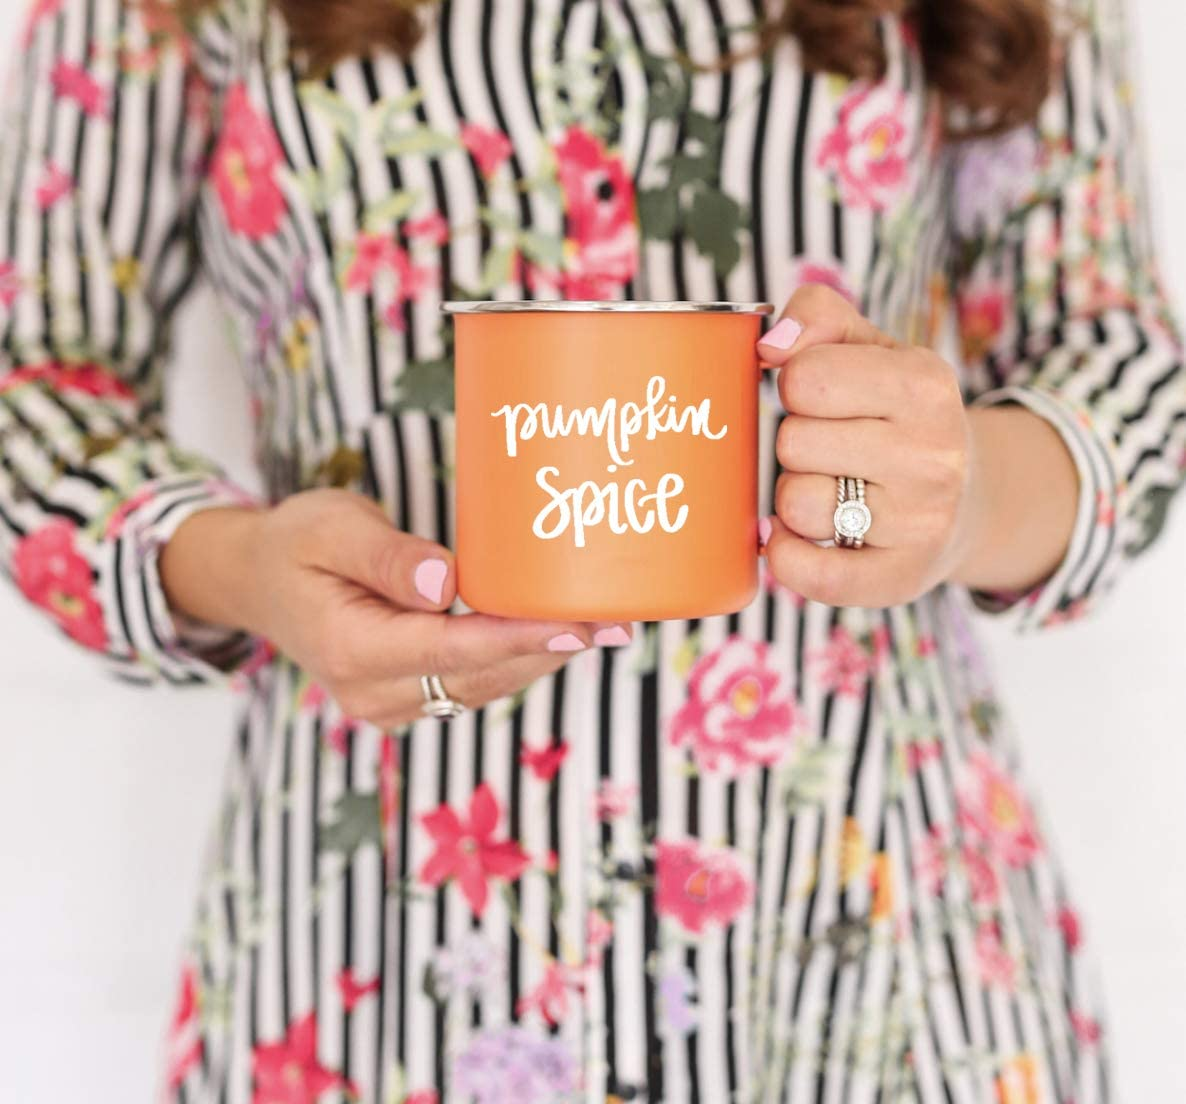 Sweet Water Decor Pumpkin Spice Campfire Coffee Mug Pumpkin Mug Fall Mug Fall Coffee Mug Autumn Decor Coffee Mugs PSL Pumpkin Spice Latte Gift for Her Autumn Campfire Mug Fall Decor Metal Coffee Cup